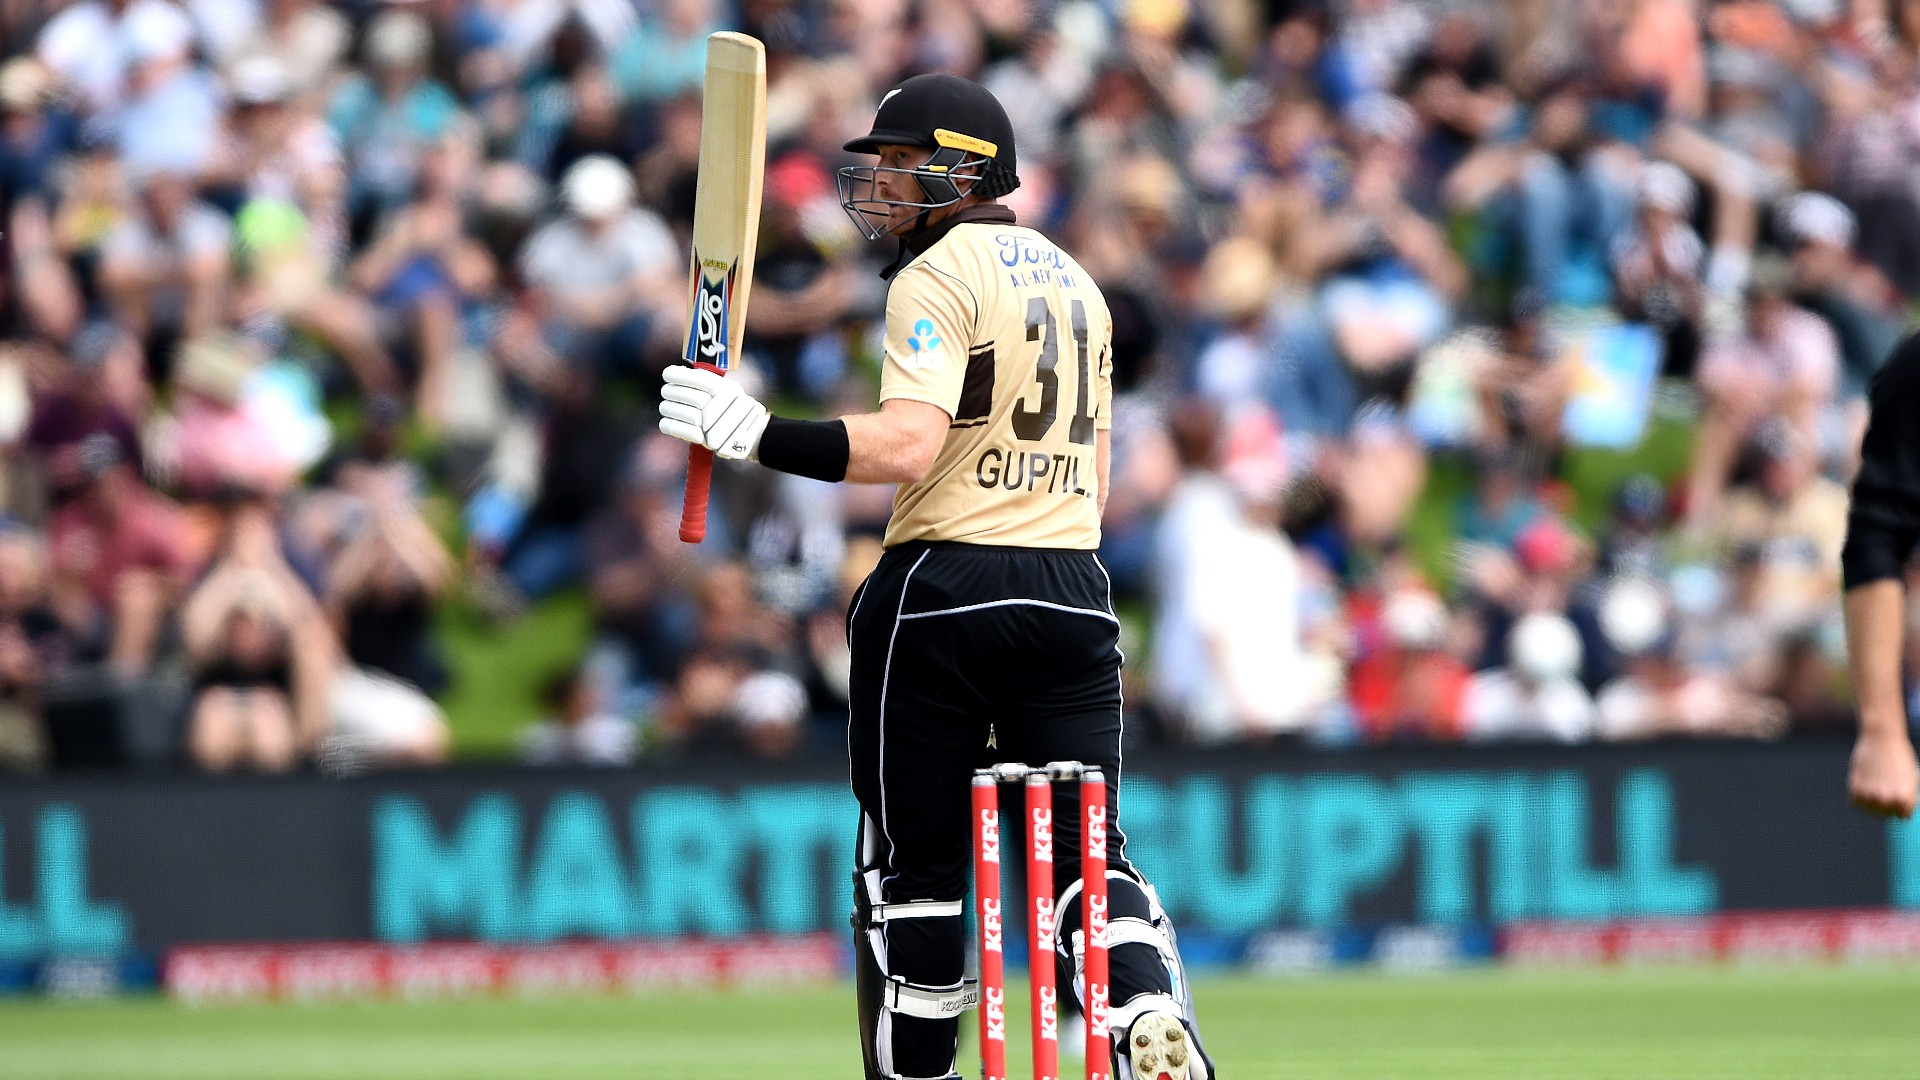 Martin Guptill led New Zealand to equal their six-hitting record in a tense four-run win against Australia in the second T20.